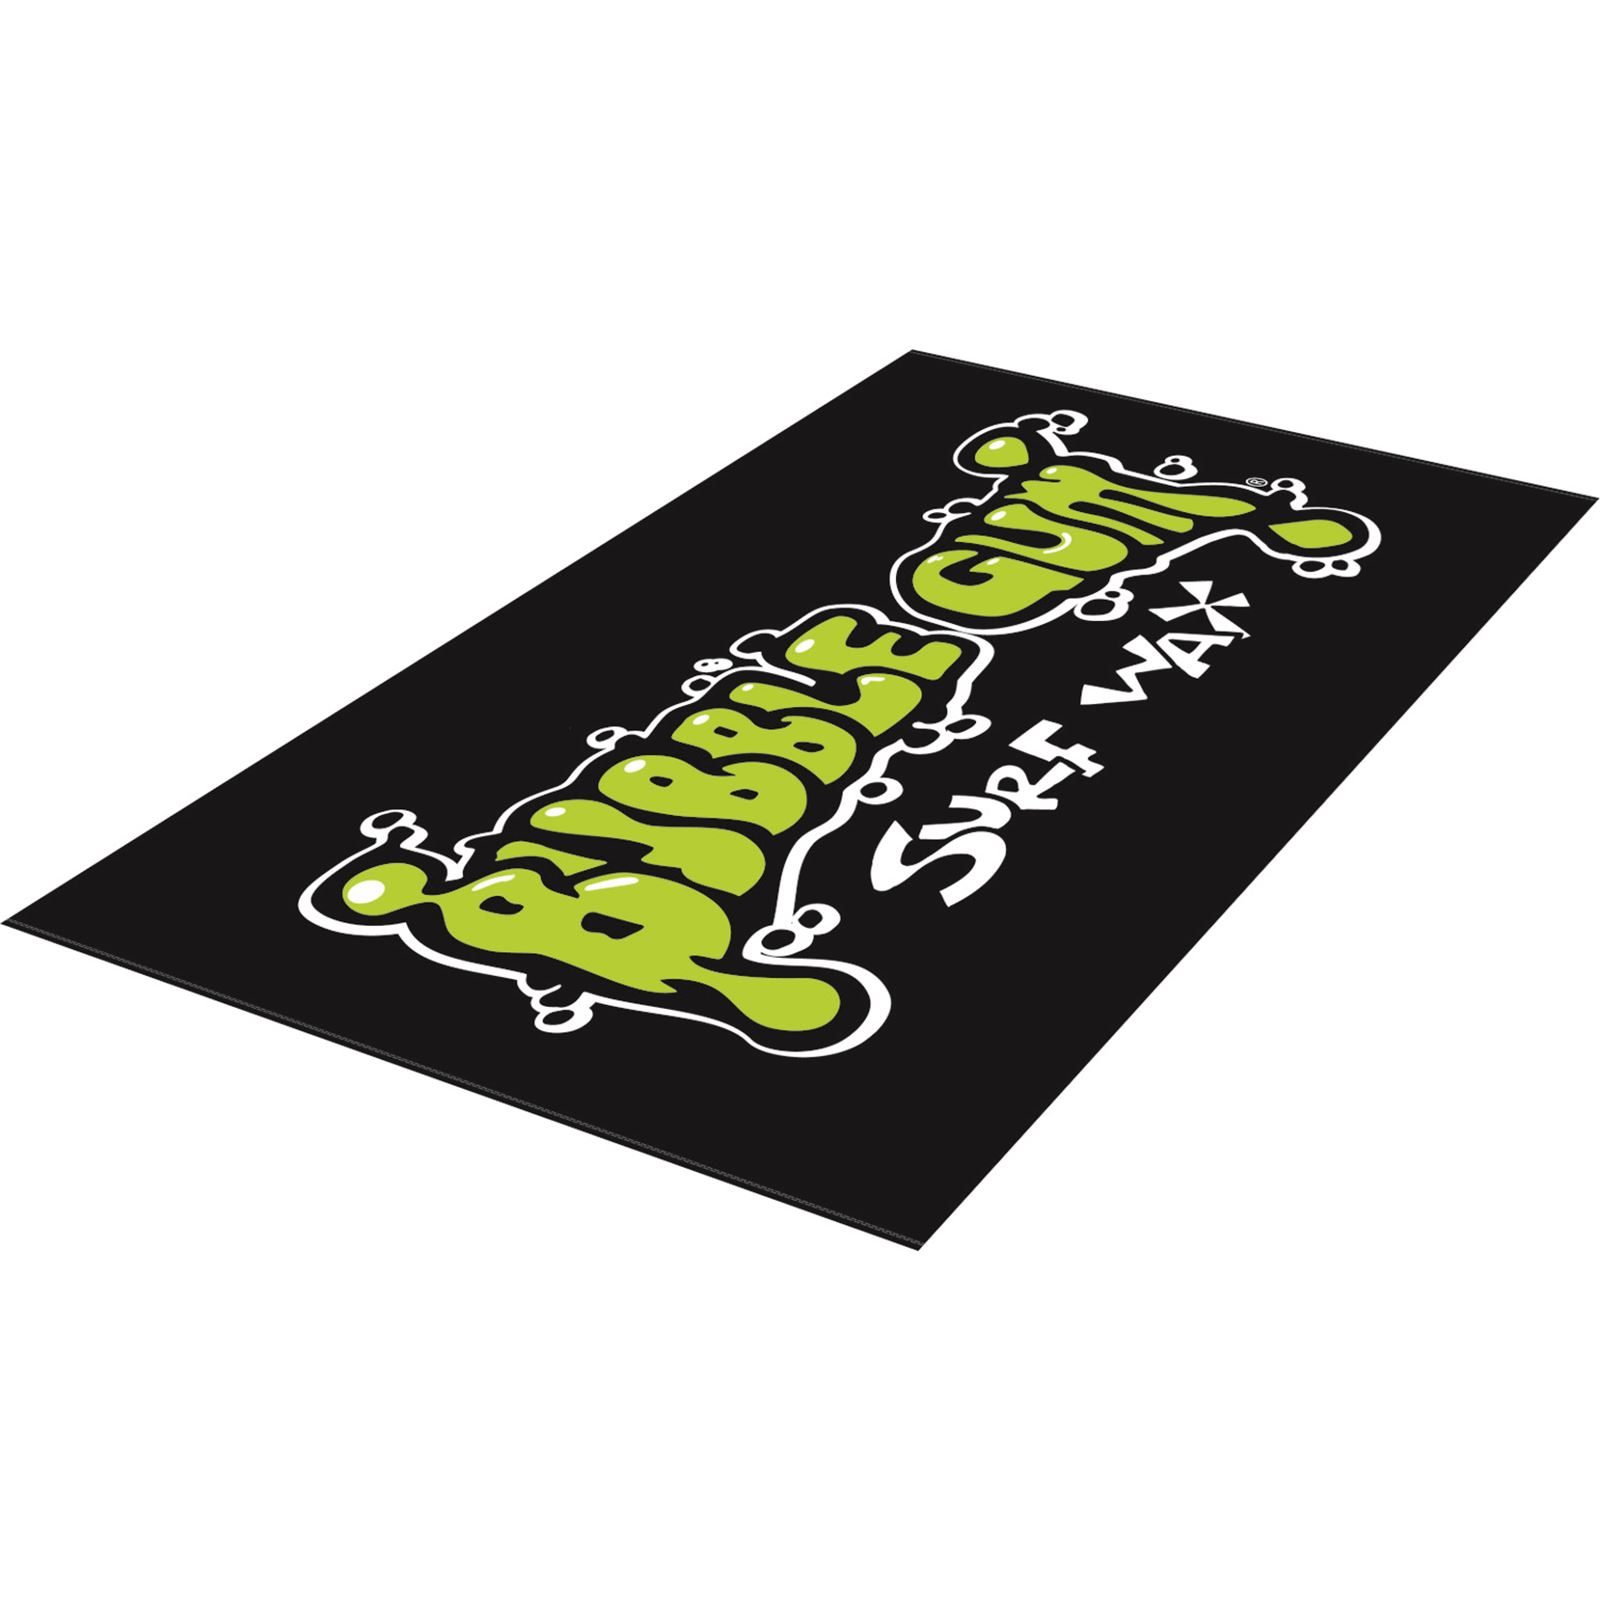 BUBBLE GUM Strandhandtuch Surf Lime beach towel